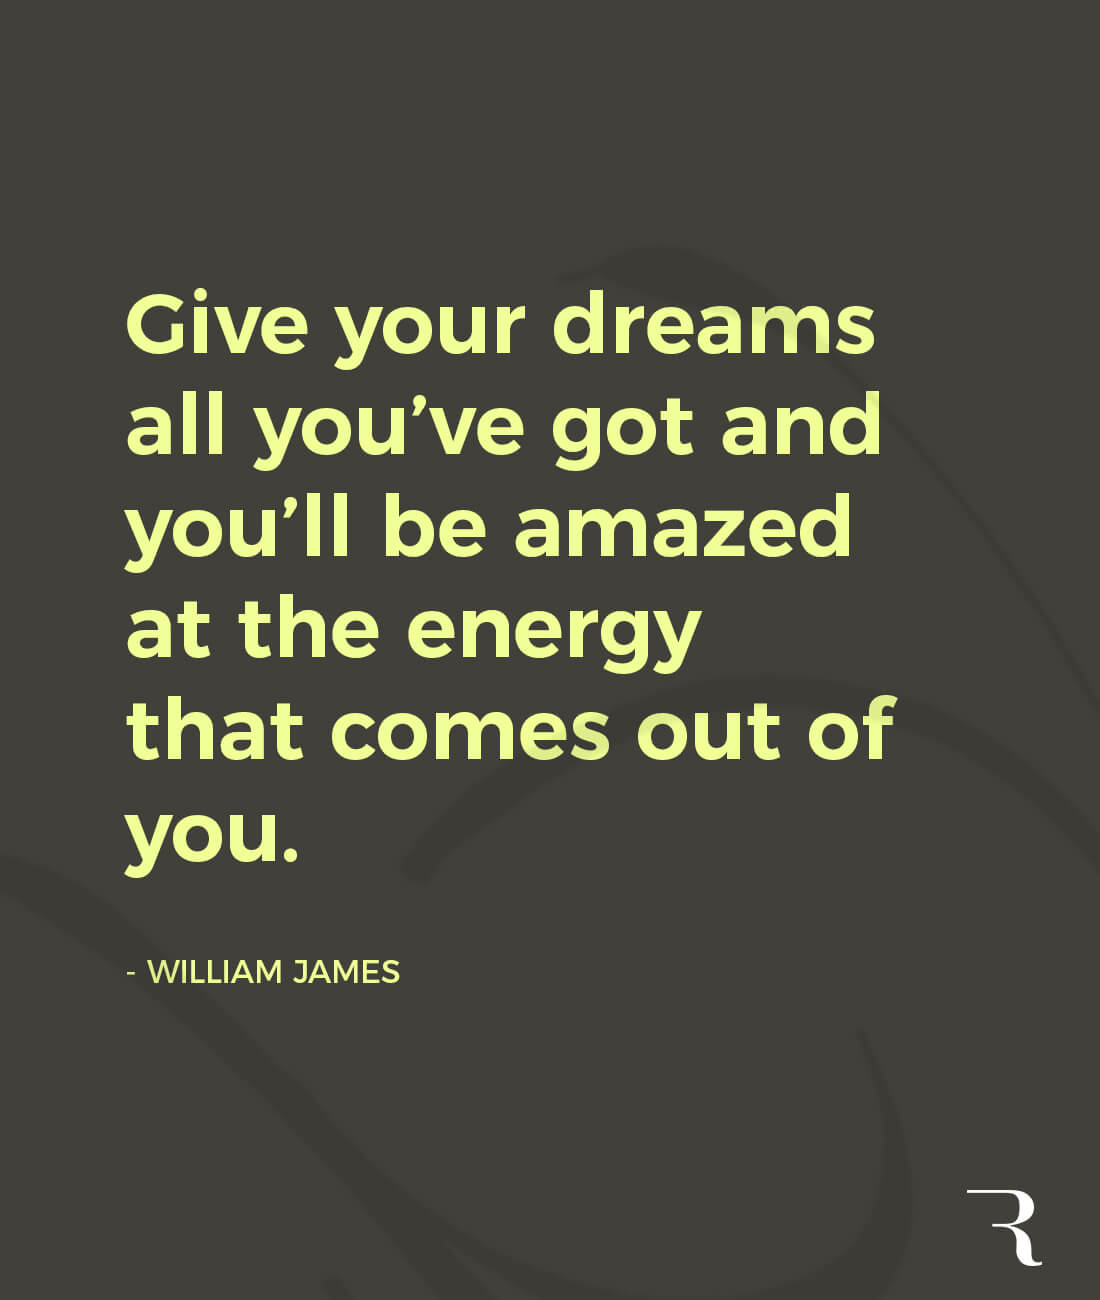 """Motivational Quotes: """"Give your dreams all you've got and you'll be amazed at the energy that comes out of you."""" 112 Motivational Quotes to Be a Better Entrepreneur"""